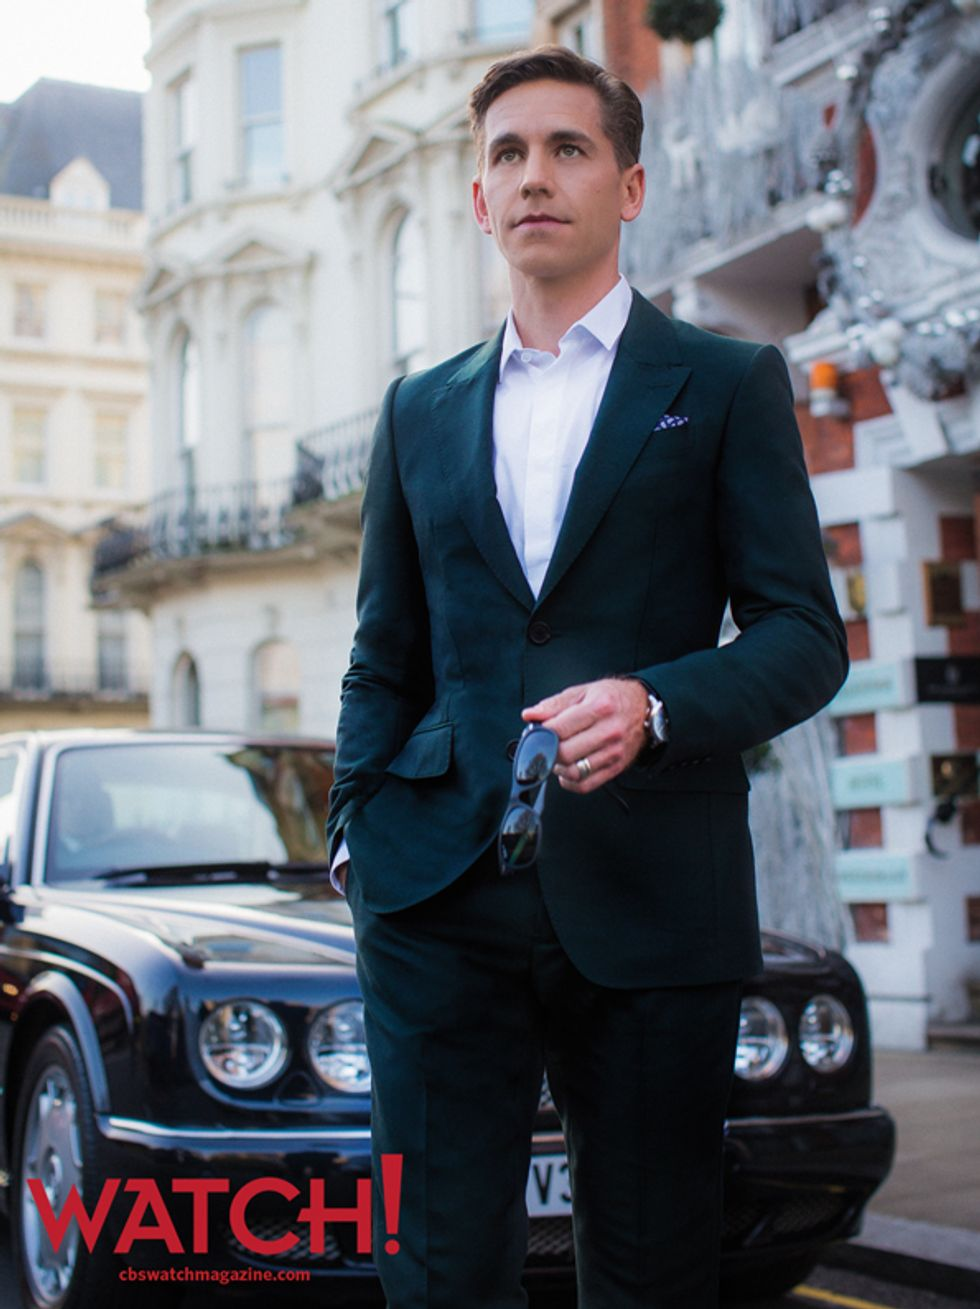 Brian Dietzen holding a pair of sunglasses and wearing a suit while standing in front of a Bentley